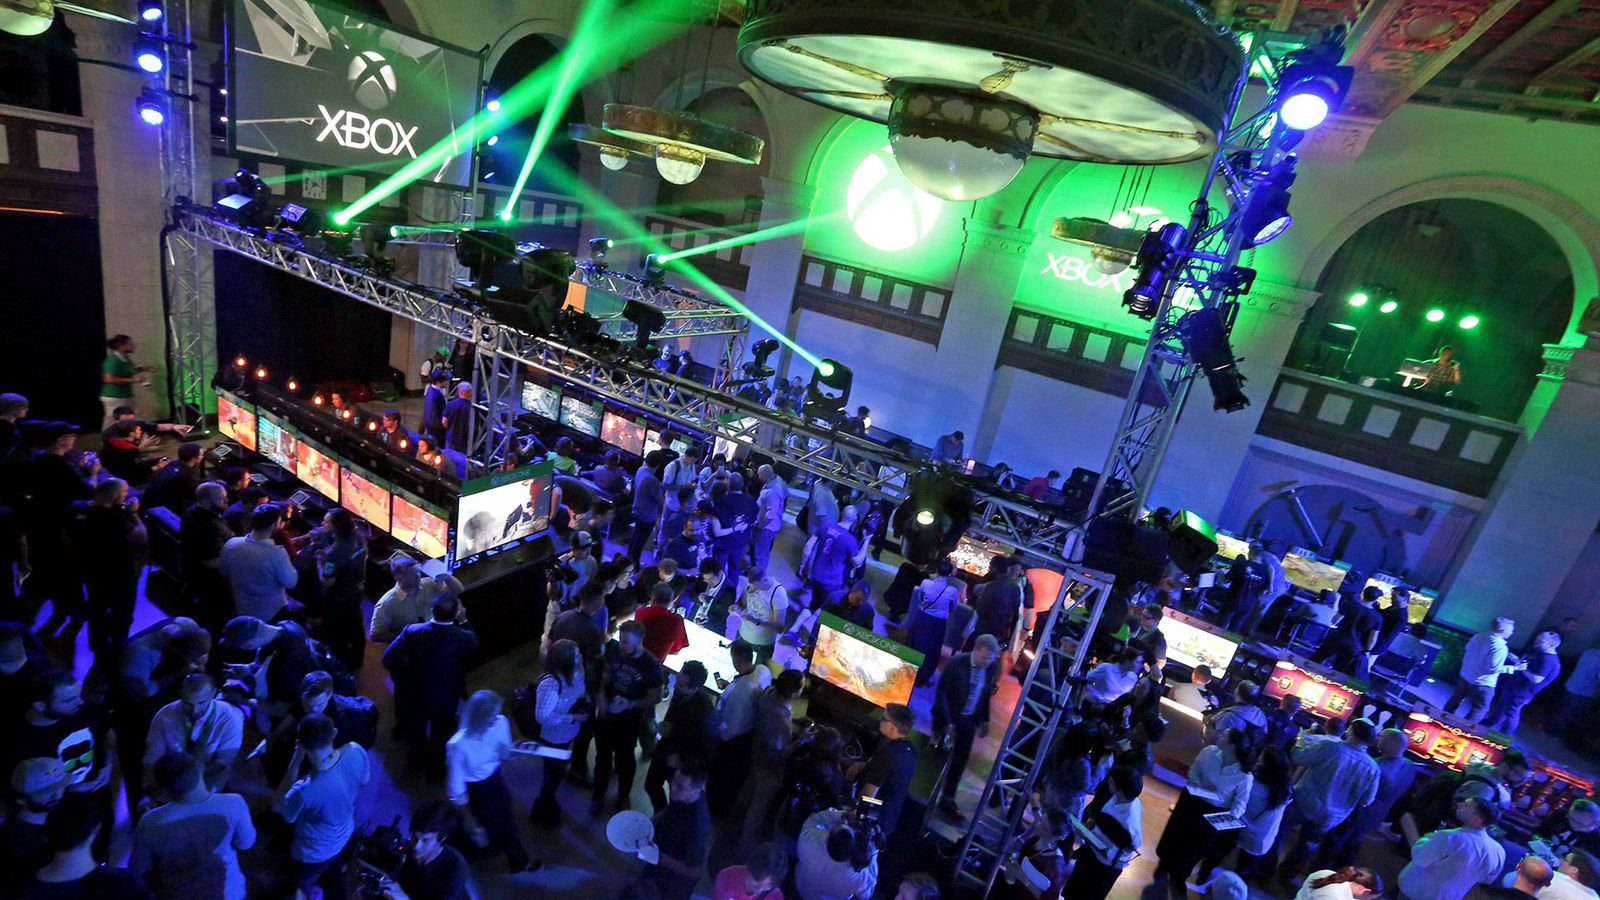 E3 2016 for the Xbox One: facts, rumors and good, old-fashioned speculation